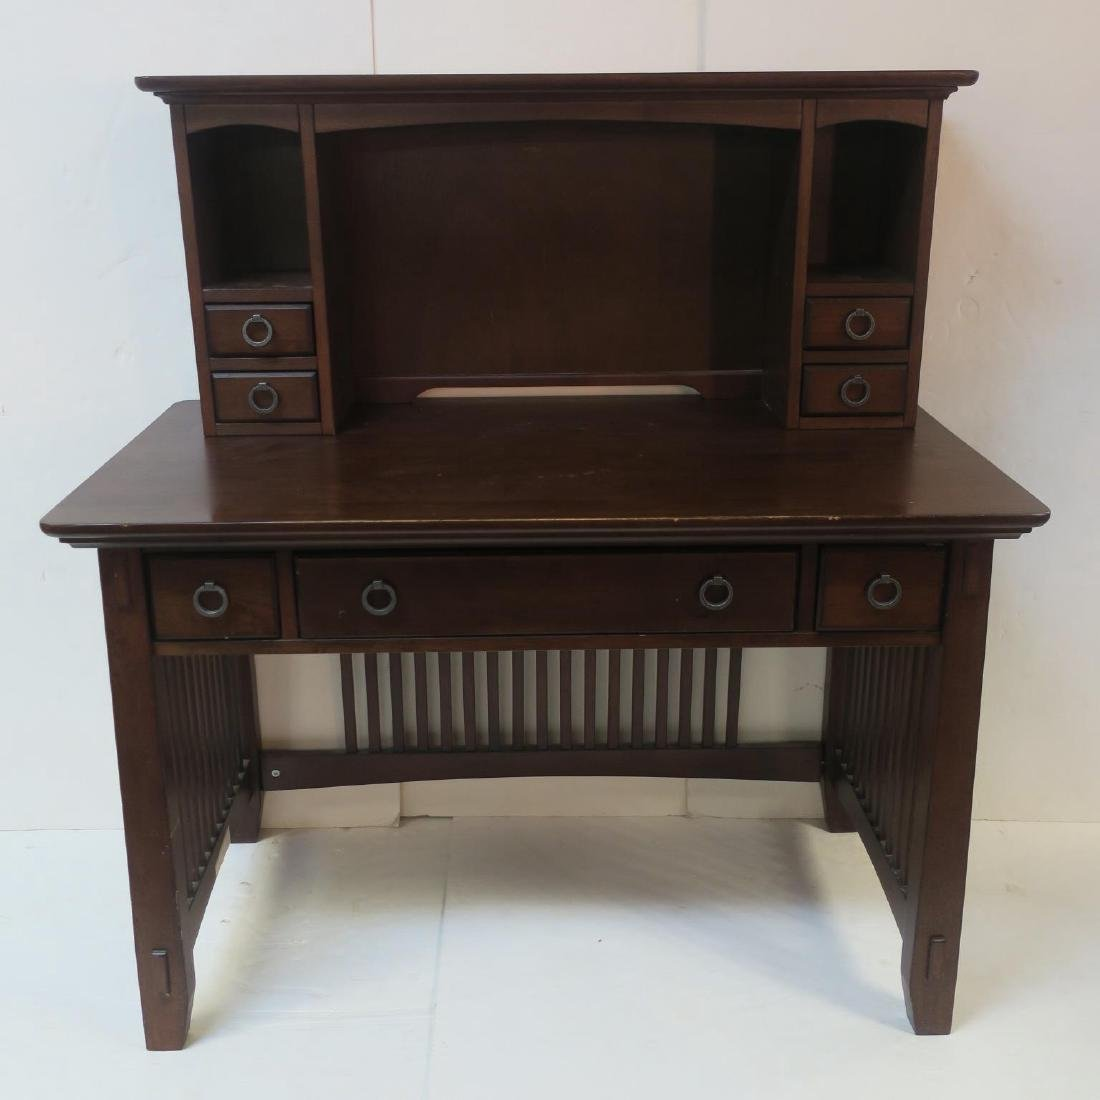 Modern Arts & Crafts Mahogany Finish Computer Desk: